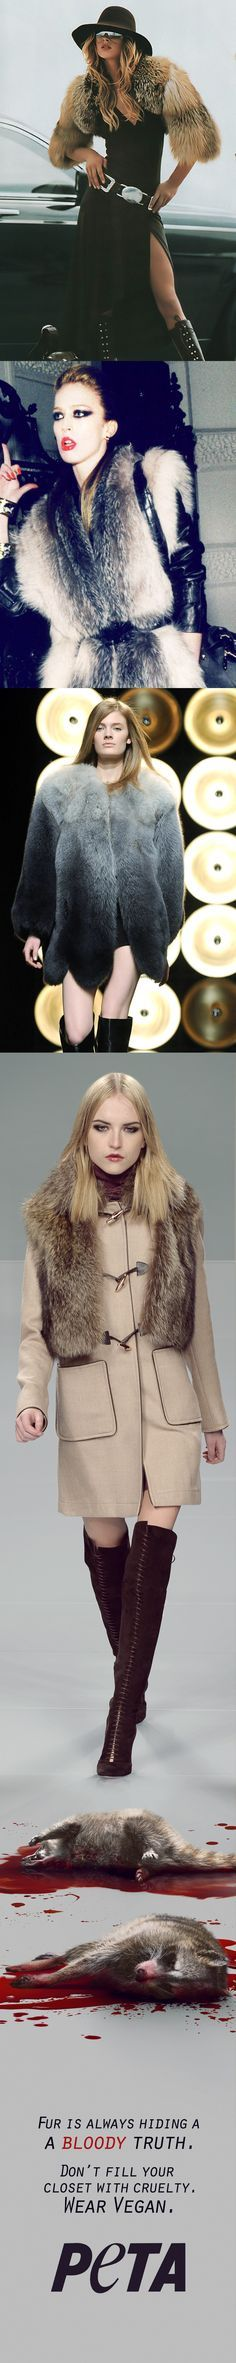 A second skin to make your own skin jealous. Fashion trend and style from fall/winter 2016-2017. #NYFW #NewYorkFashionWeek #Fashion #FashionWeek #Trend #Winter #Fur #FurCoat #FoxFur  Photo credit: fervent-adepte-de-la-mode via Visualhunt / CC BY 2.0 (https://www.flickr.com/photos/51528537@N08/8476822003/) (https://www.flickr.com/photos/51528537@N08/8527720975/) (https://www.flickr.com/photos/51528537@N08/8517819101/) (https://www.flickr.com/photos/51528537@N08/8531626166/)